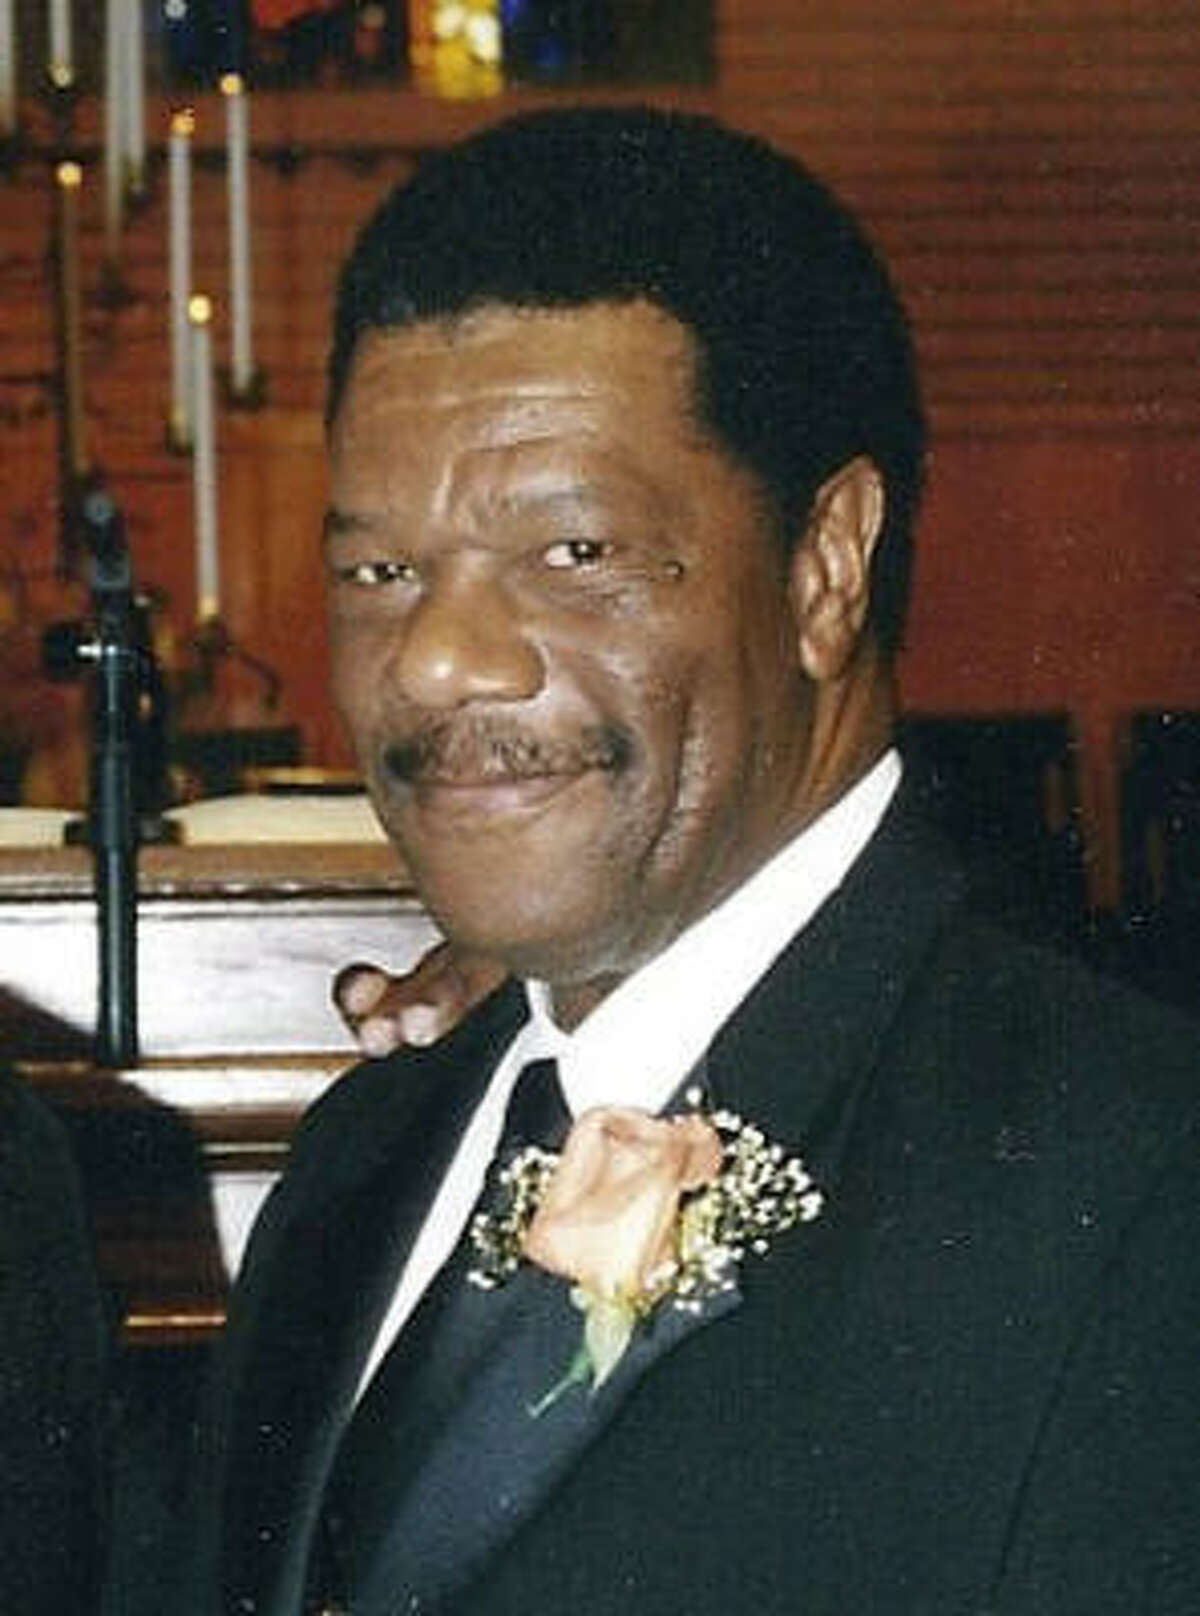 Carnegie Howard Mims Jr., a Houston lawyer who died Dec. 20, spent much of his youth in Austin, where he was among a small group of students involved in the integration of Stephen F. Austin High School.